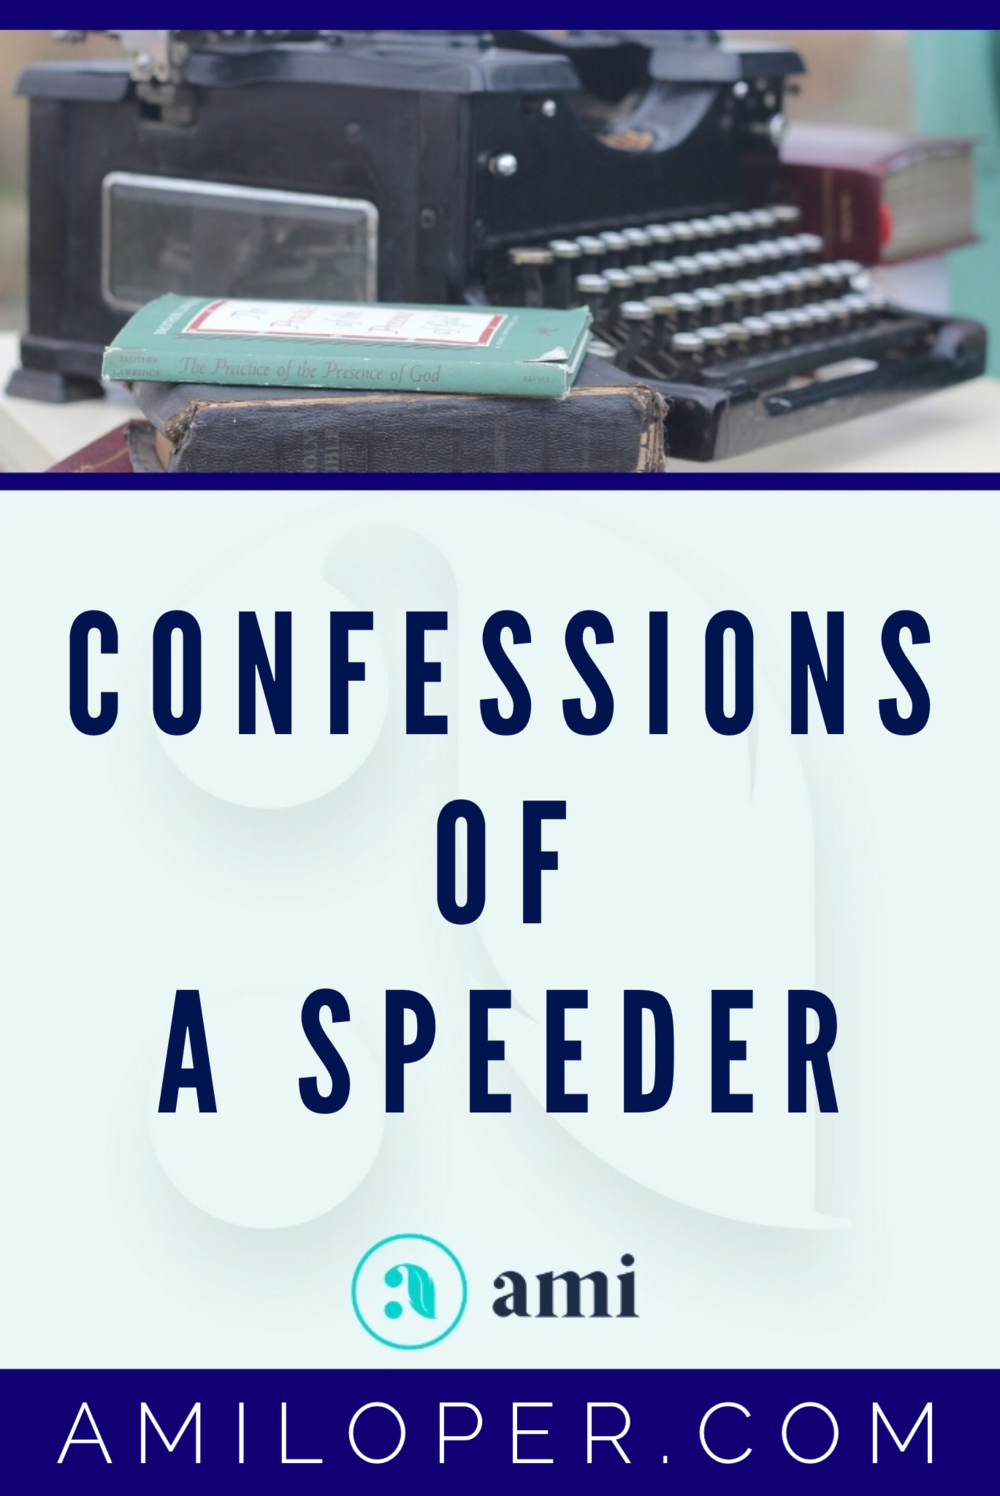 Speeding is one of those things that we've all done at one time or another. And we don't generally see much harm when everyone else is going much faster than we are. But the Lord showed me how we often fall into this trap in our spiritual lives too: Thinking that if we aren't the worst offenders, there's really no offense at all. How does God see this? Read the full blog post to see a different, perhaps unique, perspective. #salvation #ChristianBlogger